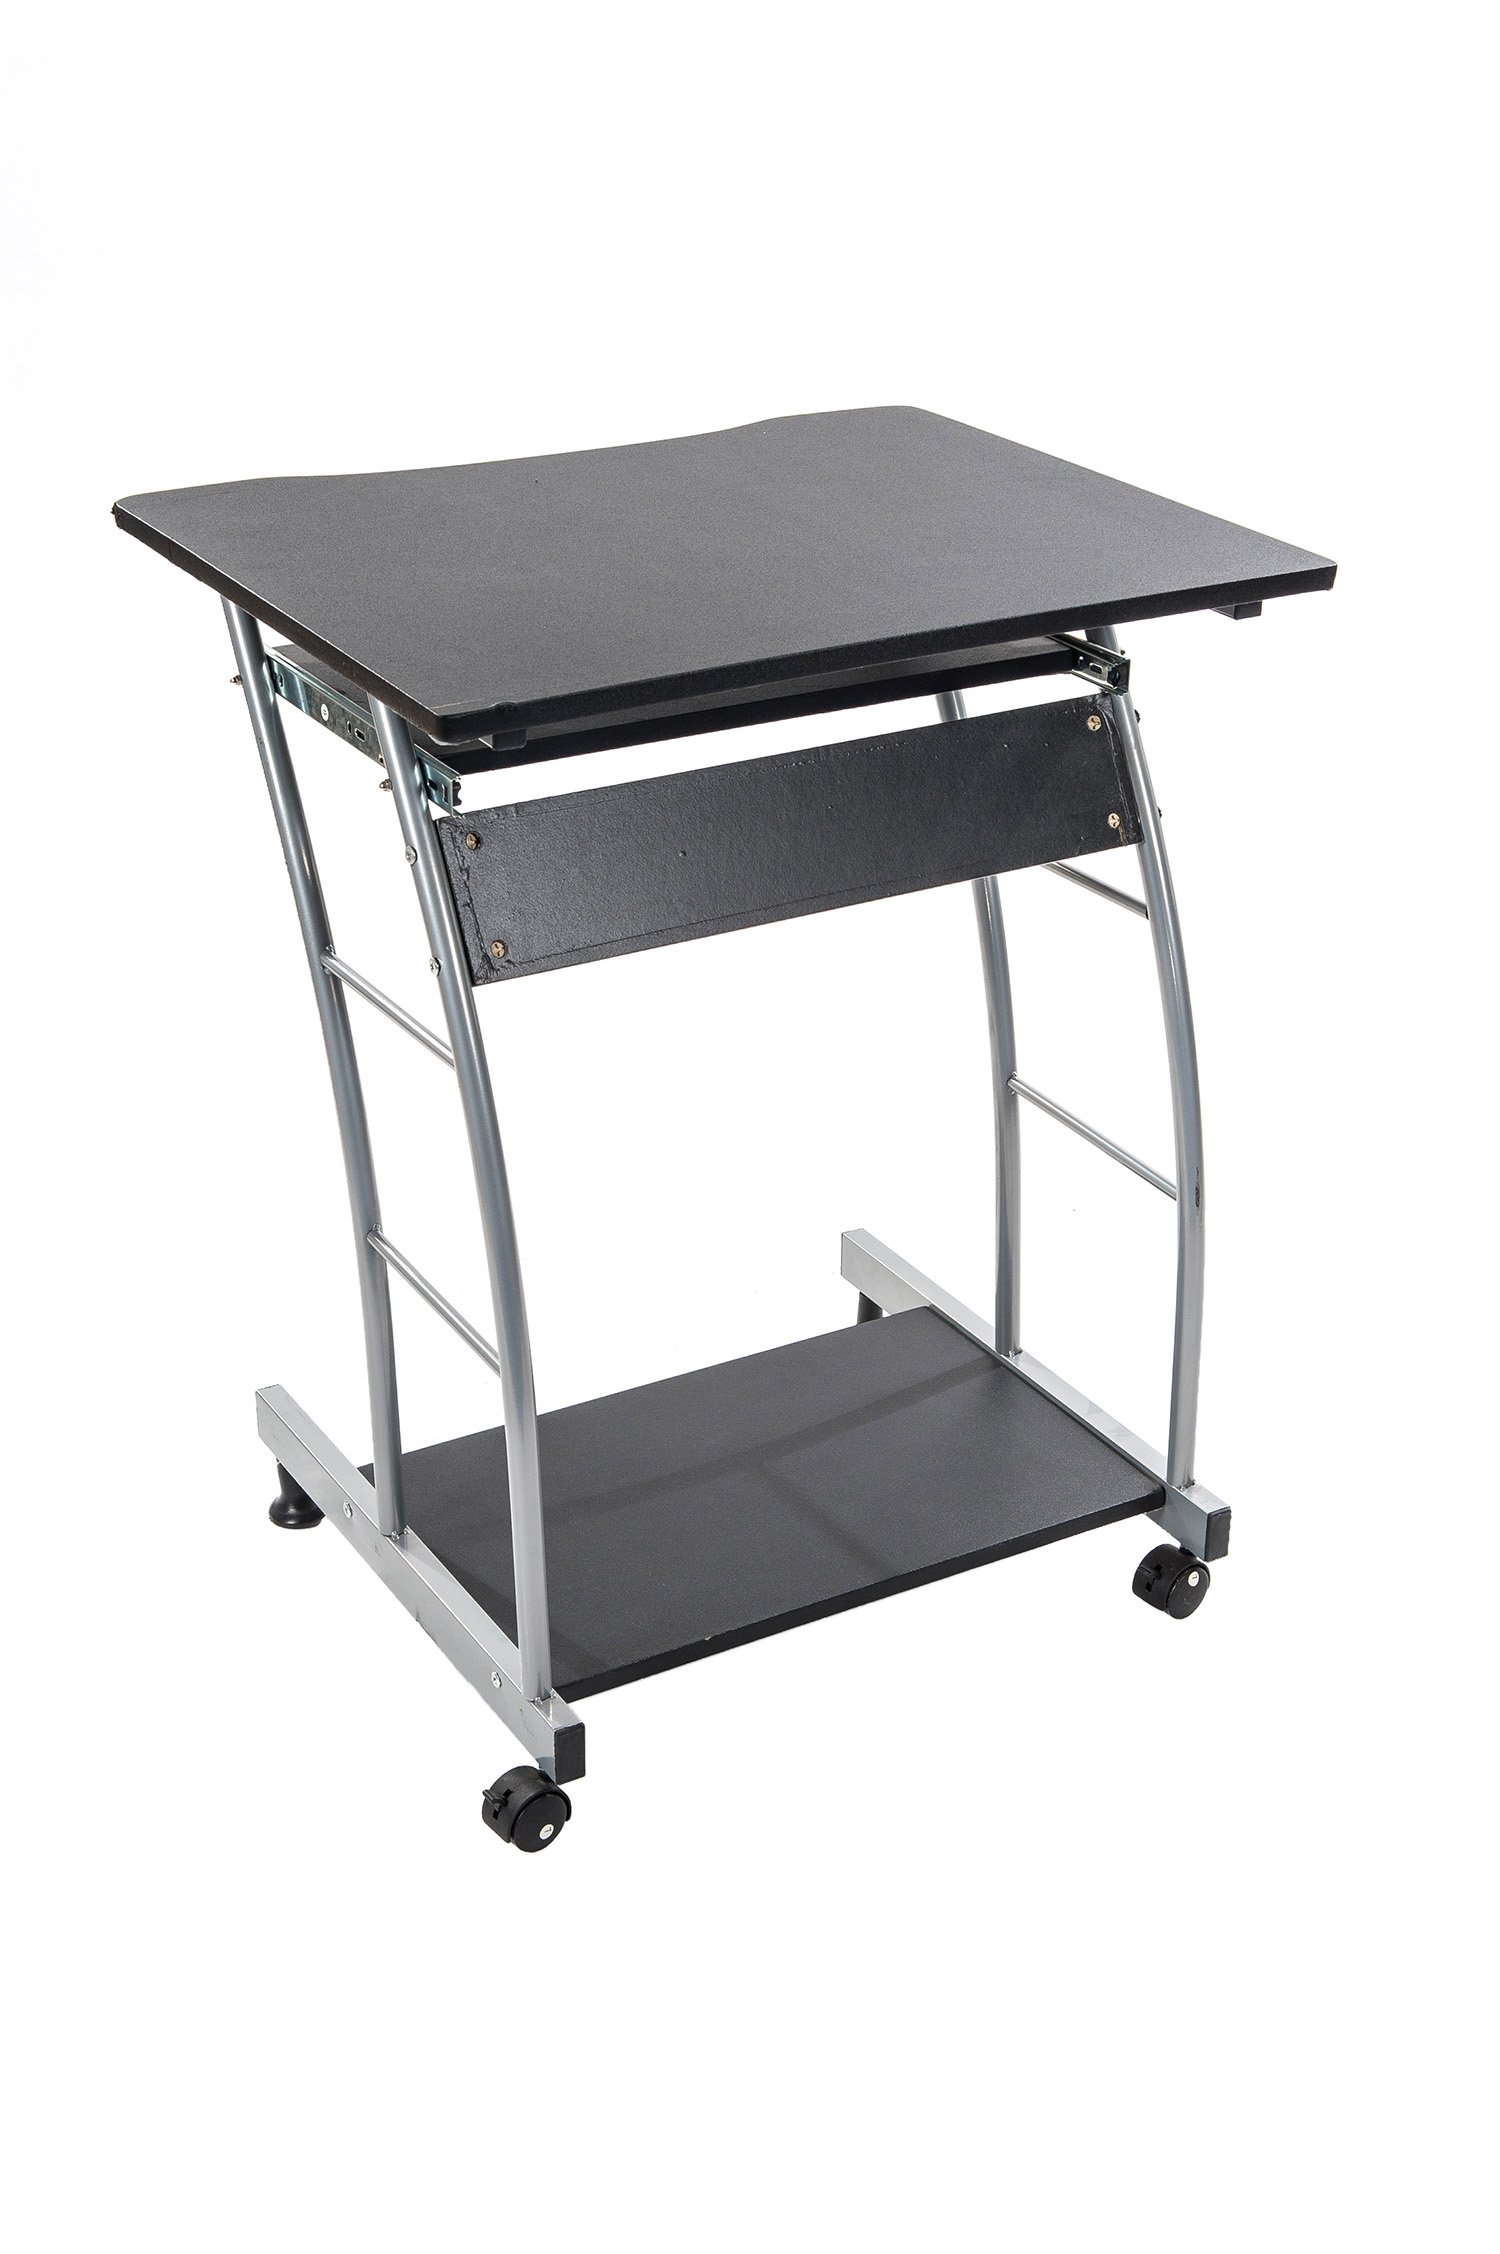 Home Source Industries 3406 Computer Cart, Black with Silver Frame